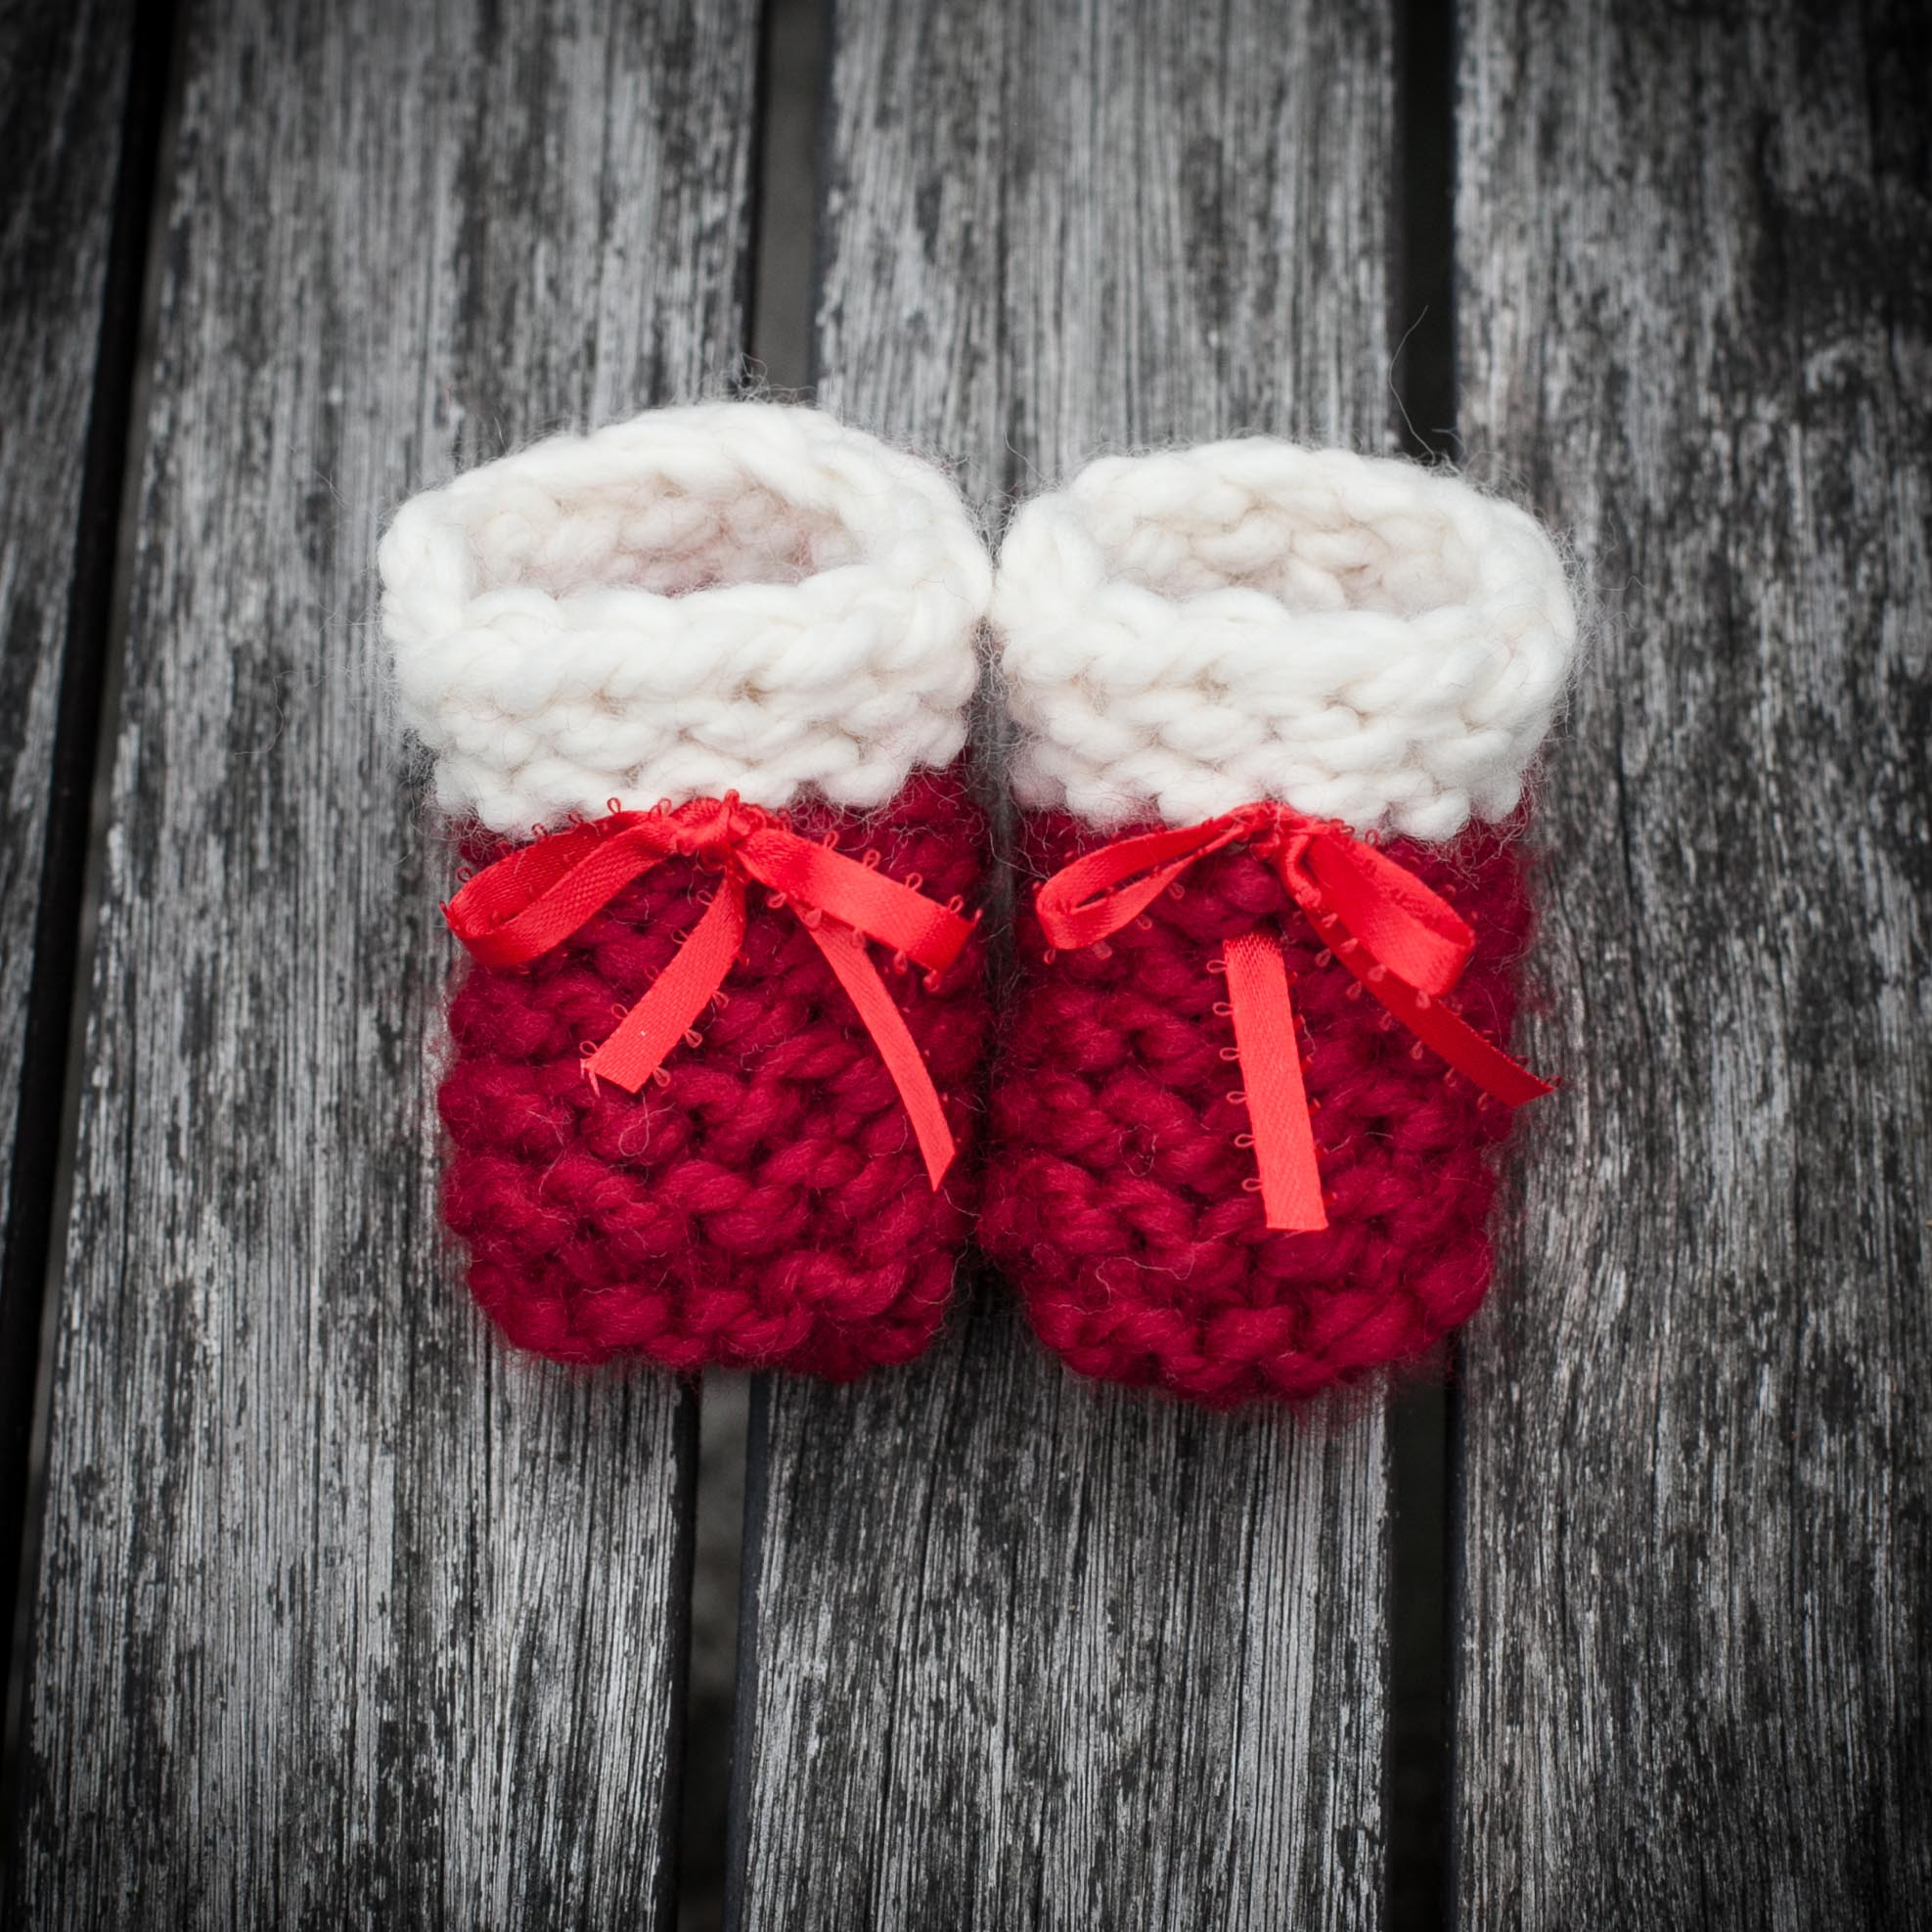 Loom knit socks, slippers, boots, footwear | This Moment is Good